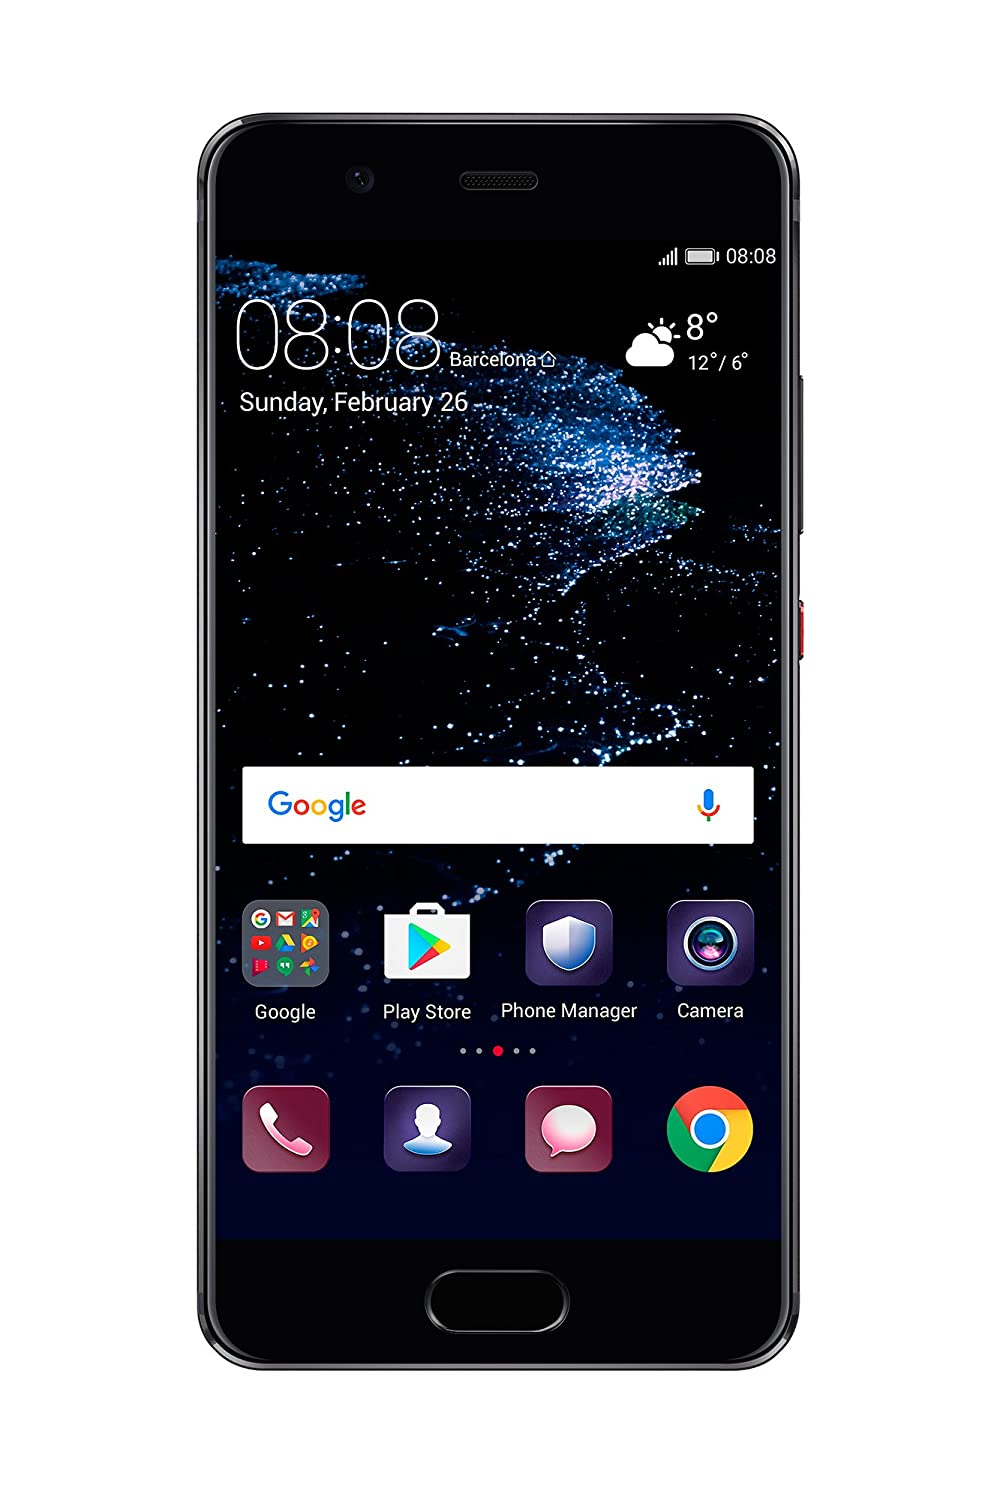 383caf3a43e4c Amazon.com  Huawei P10 VTR-L29 64GB Graphite Black